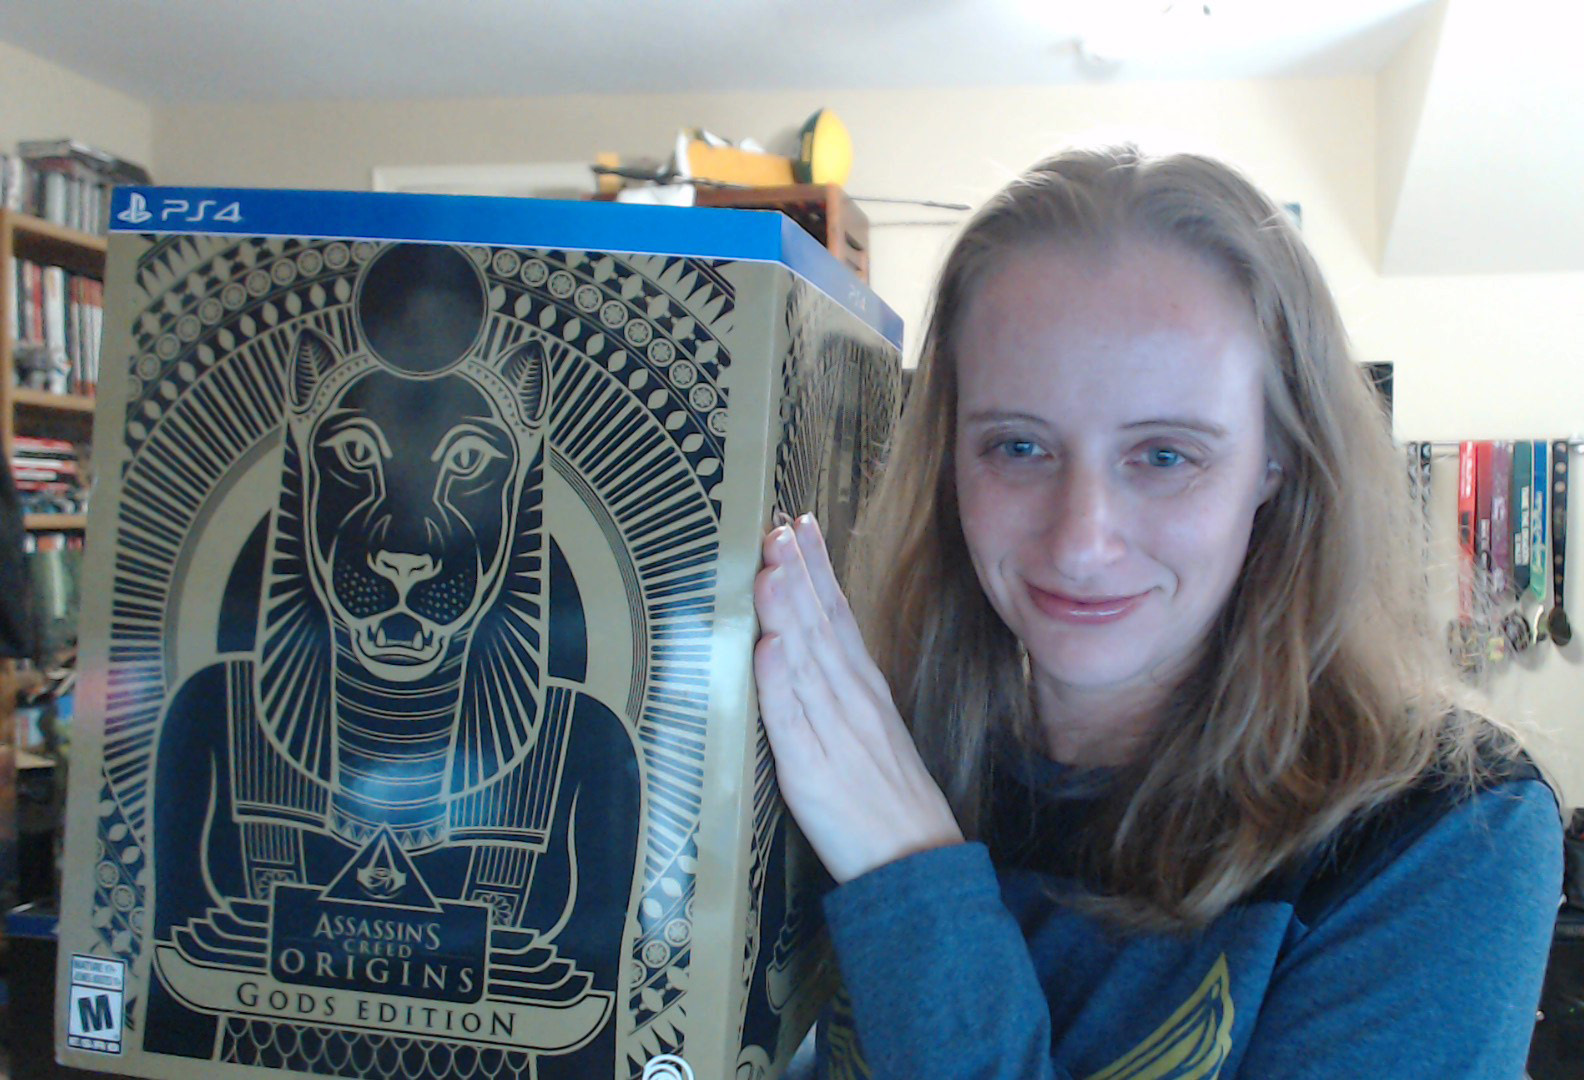 Unboxing The Assassins Creed Origins Collectors Edition